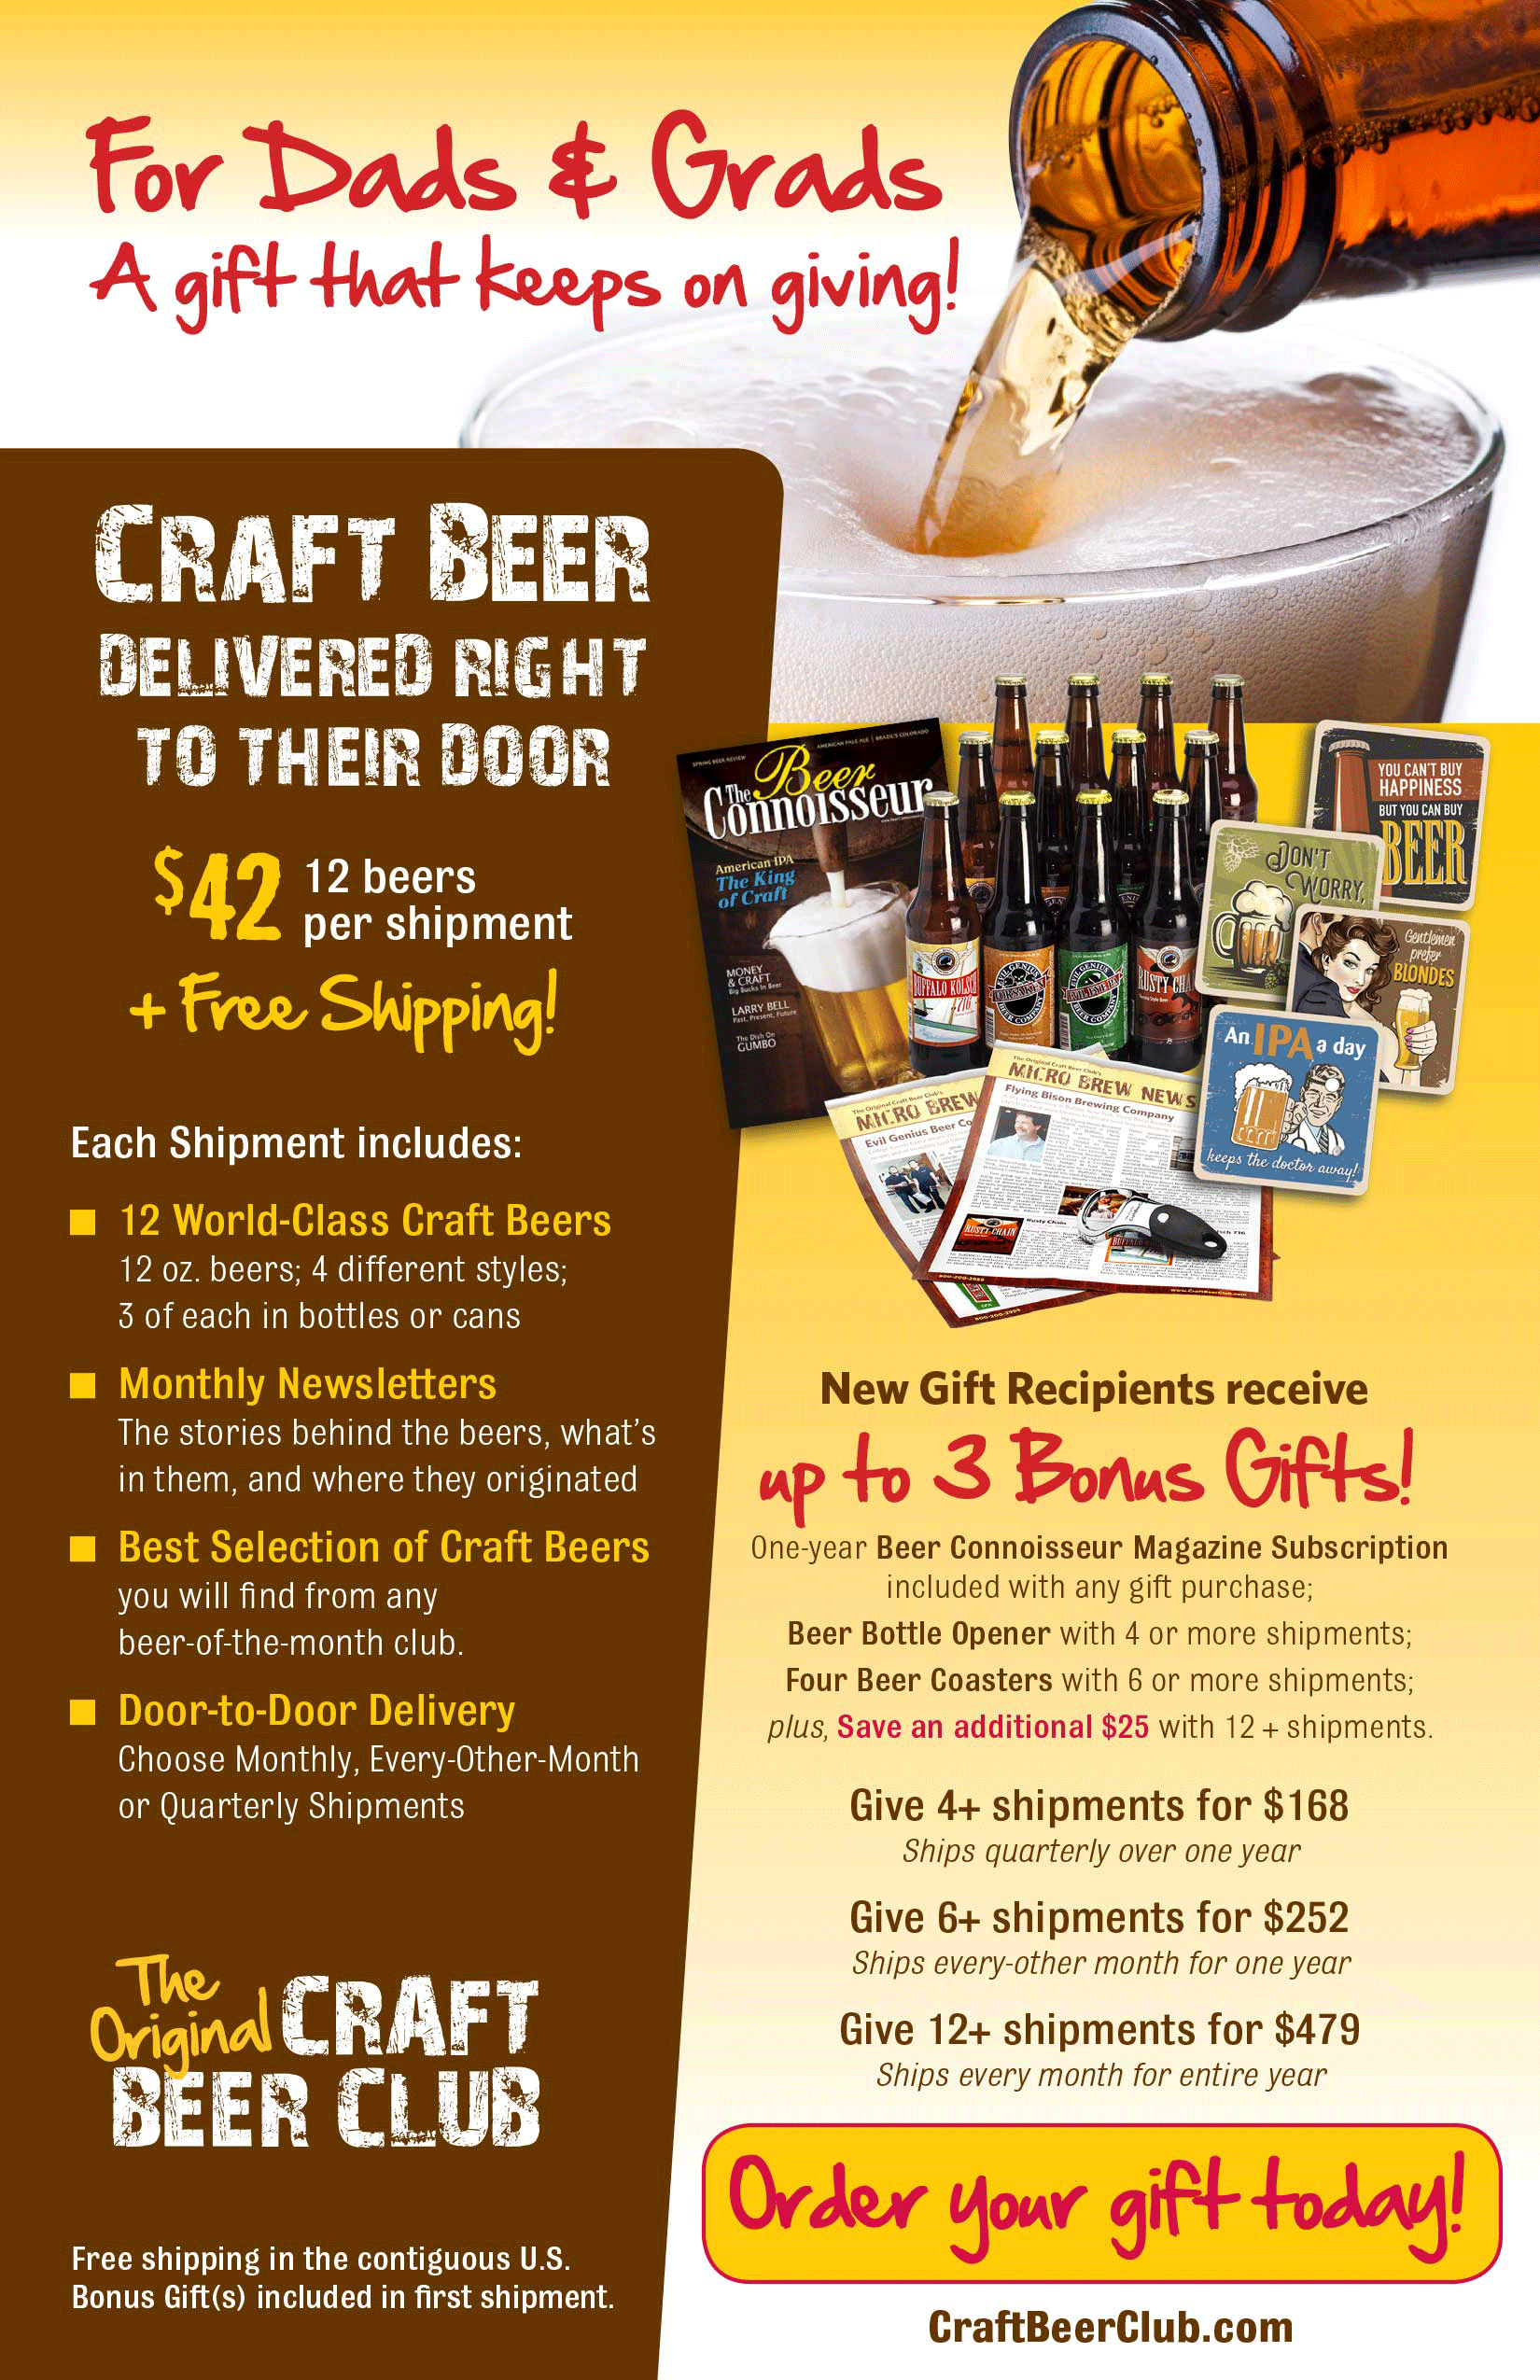 Beer of the month club craft beer gifts for dads and grads for Best craft beer of the month club